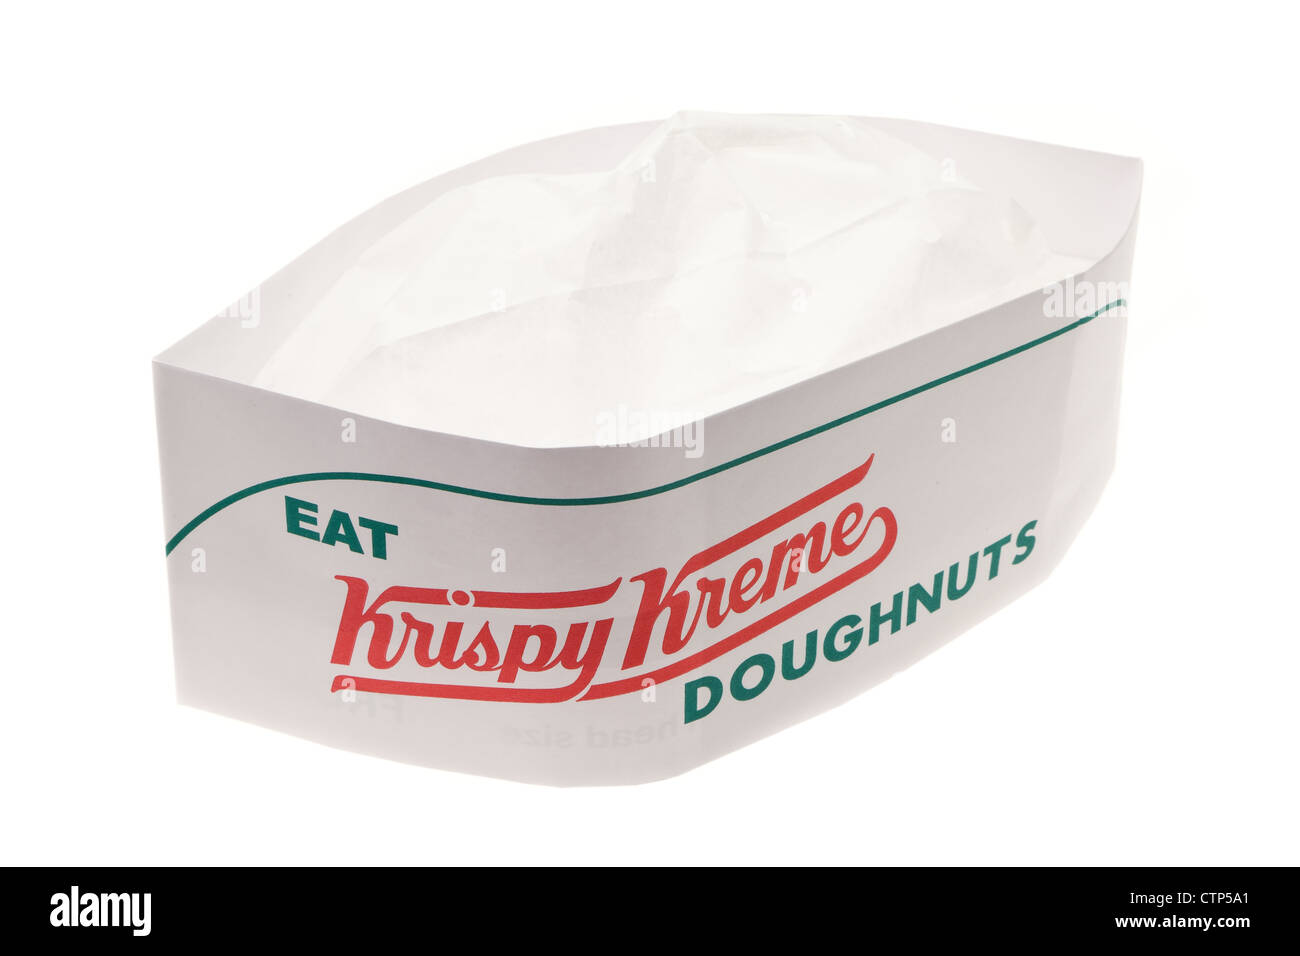 A new Krispy Kreme chefs hat - studio shot with a white background - Stock Image